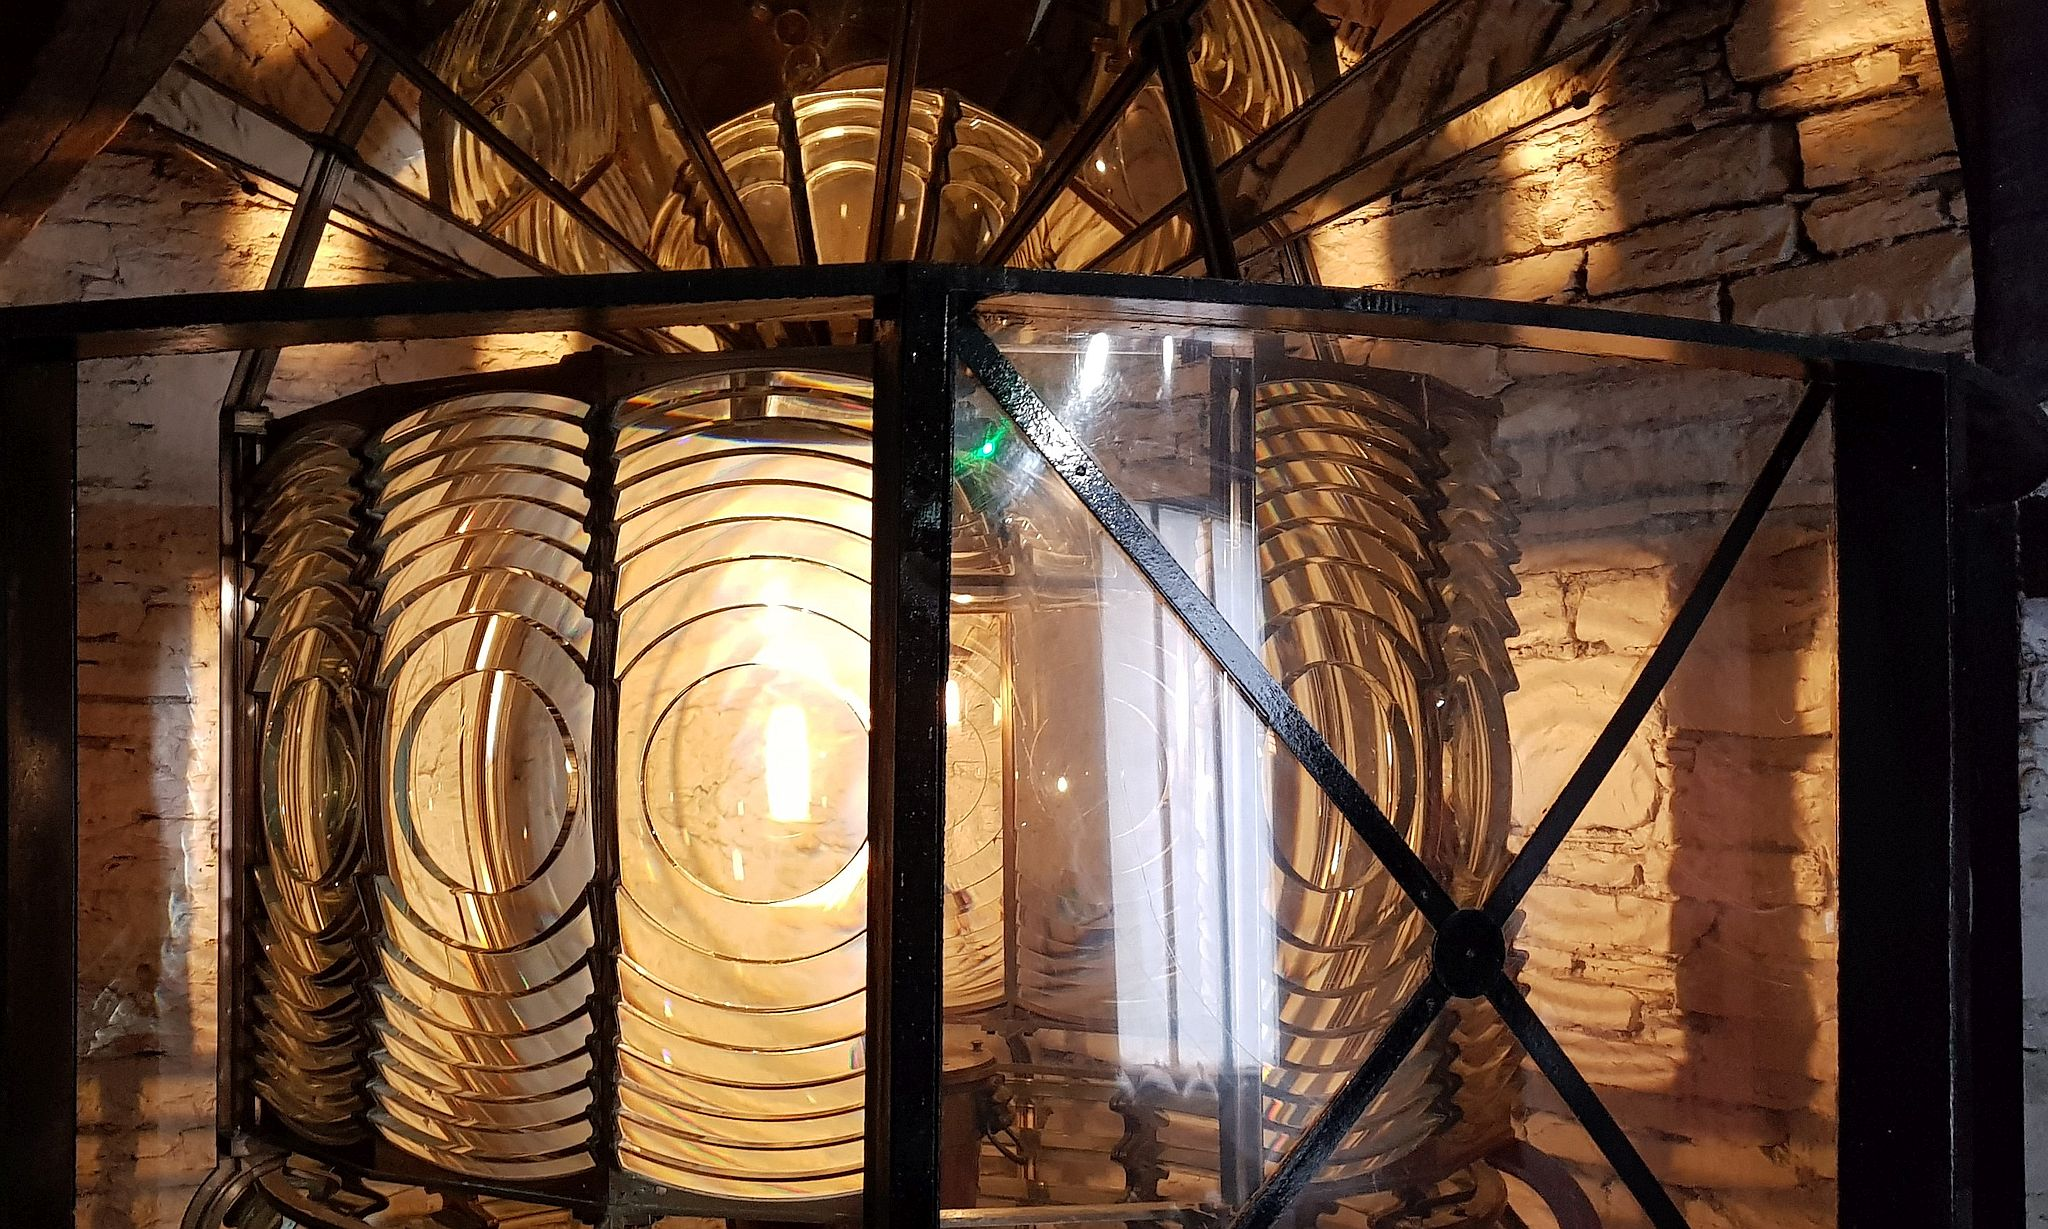 See the fresnel lens from Noss Head Lighthouse in the WIck Heritage Museum